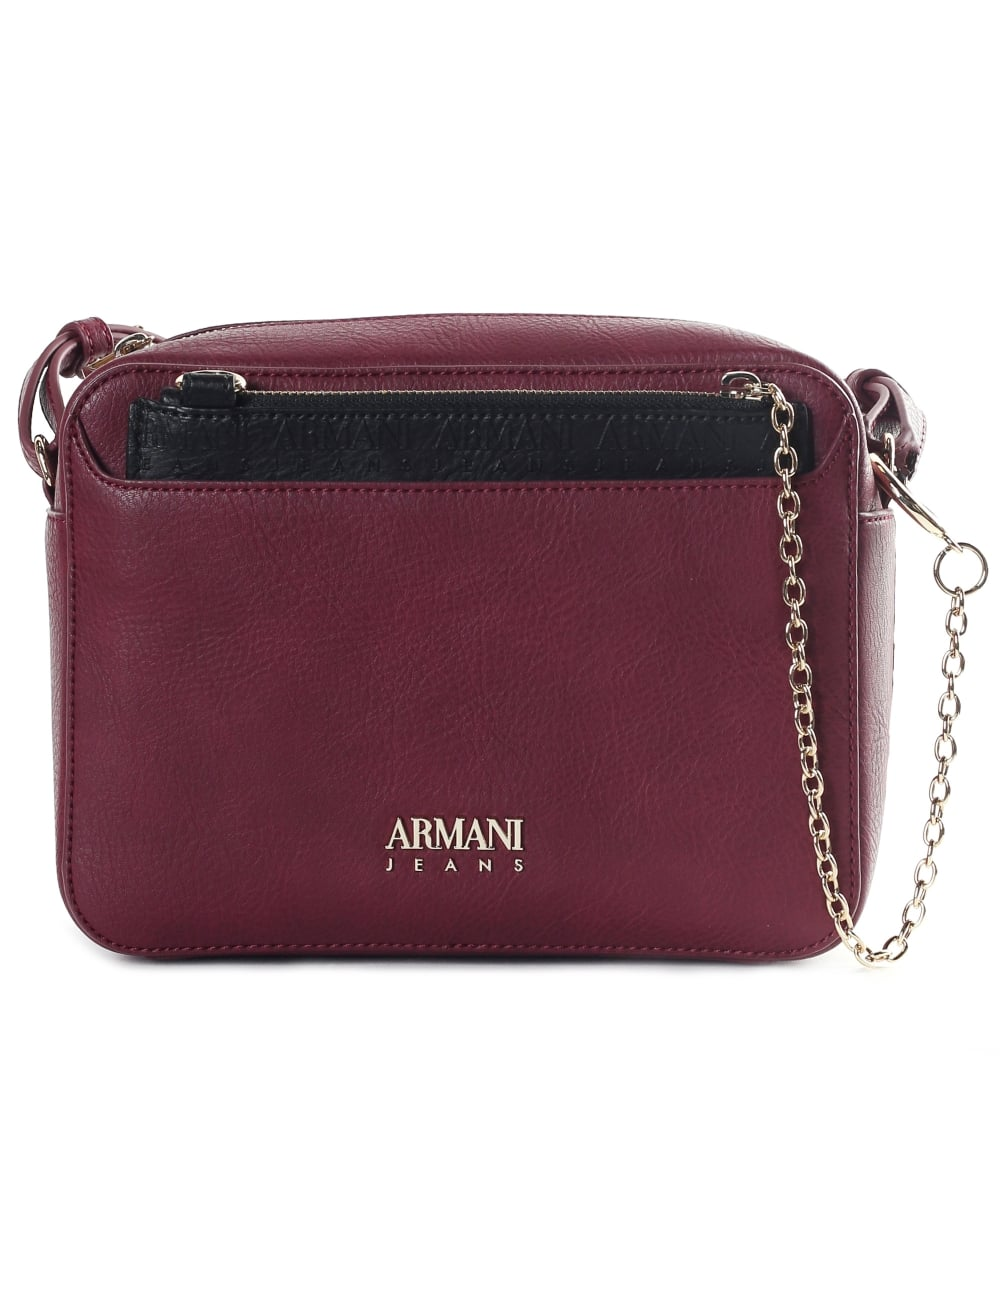 Armani Jeans Women s Crossbody Bag f852fe88a97